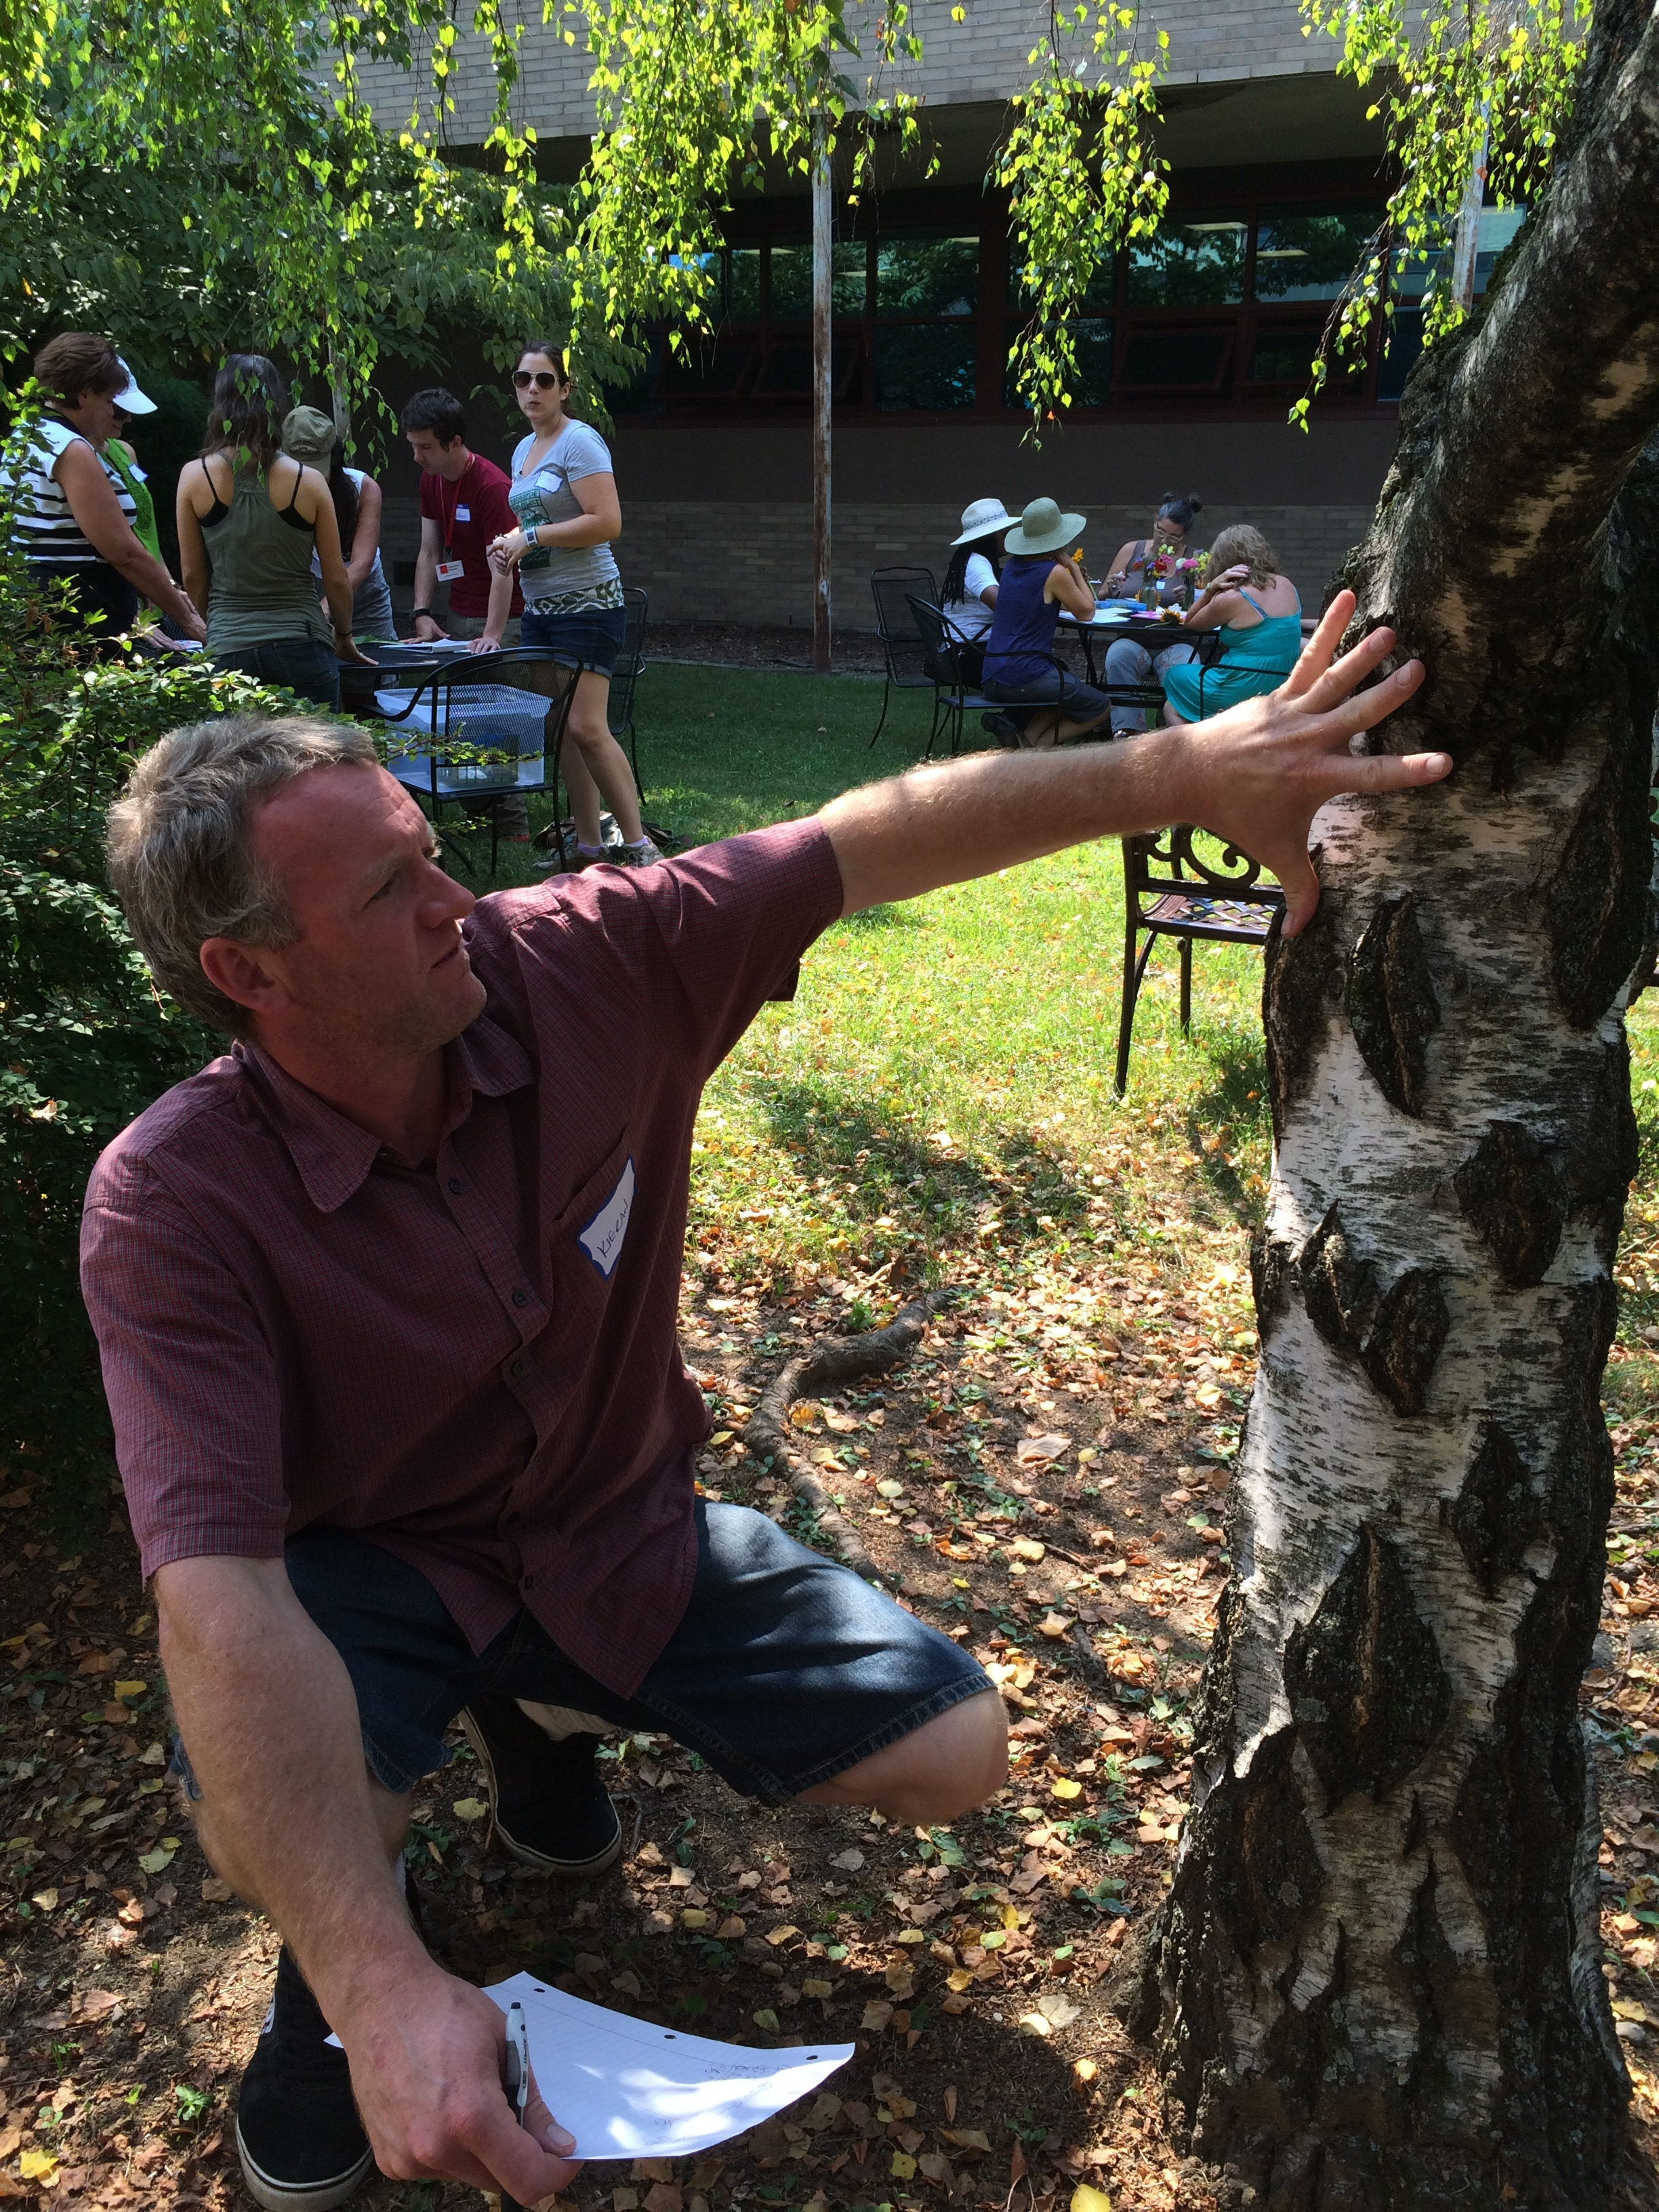 Kieran Hales from the  Primrose Hill School  measures a tree using hand spans to demonstrate a lesson from  Math in the Garden .